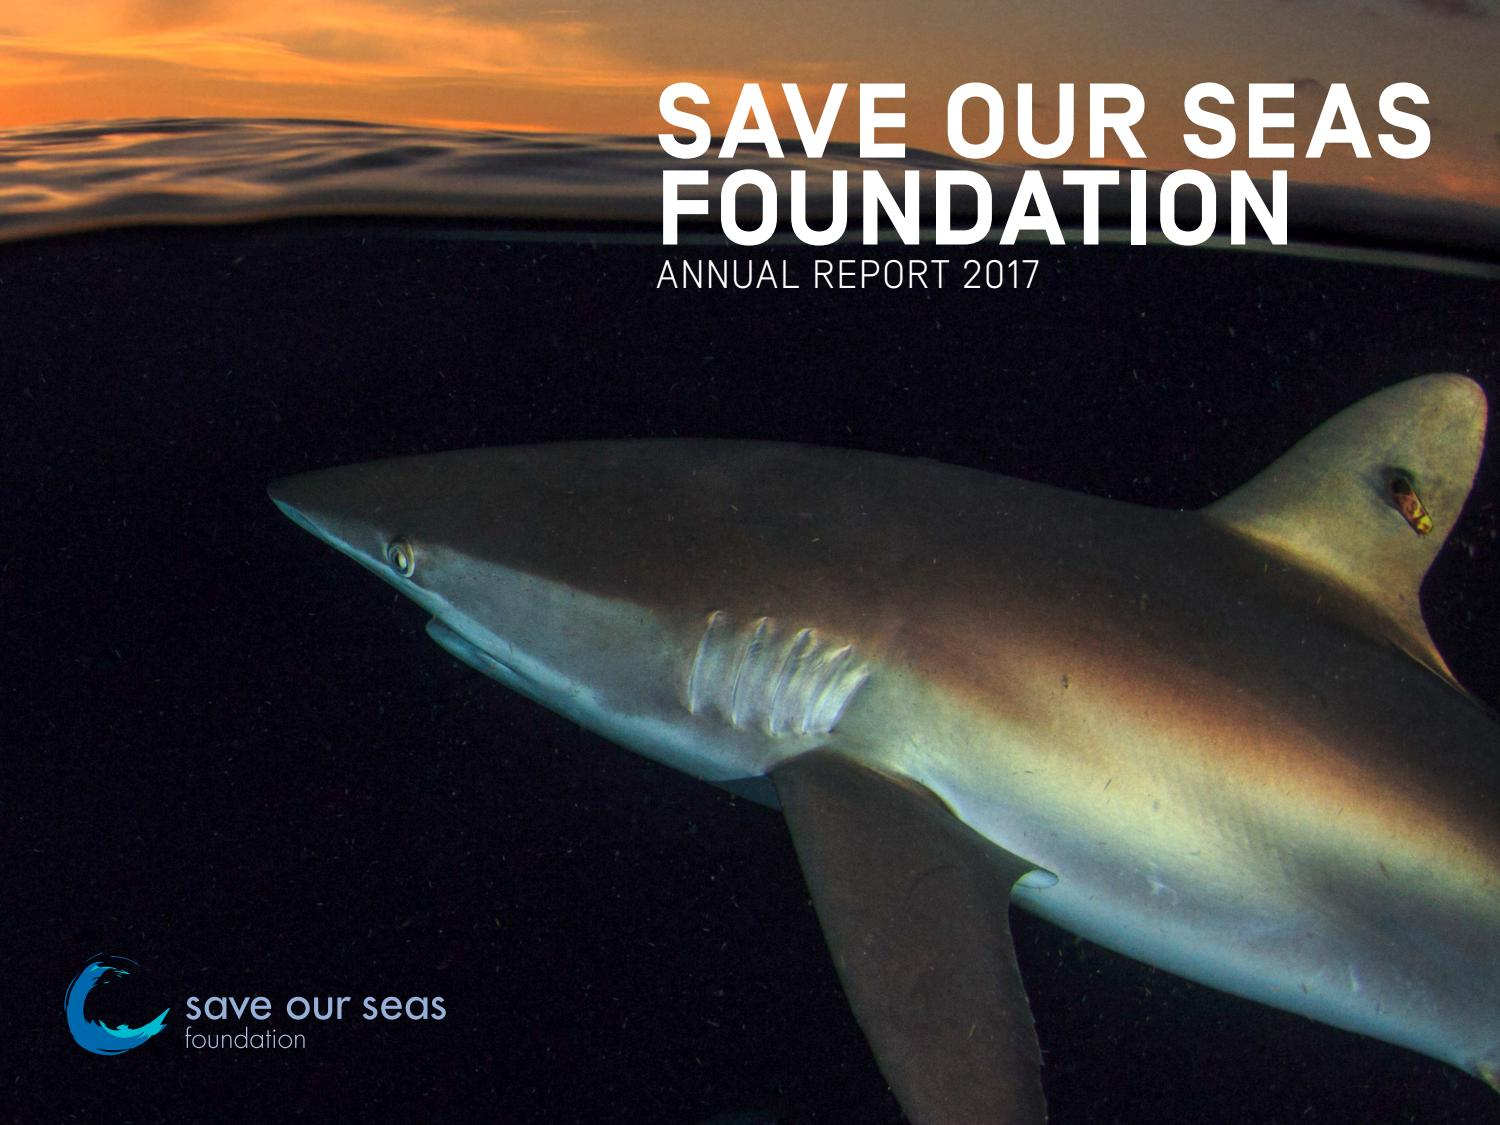 Sosf 2017 Annual Report By Save Our Seas Foundation Issuu Relay Hbridge Motor Controller Francesco Amirante